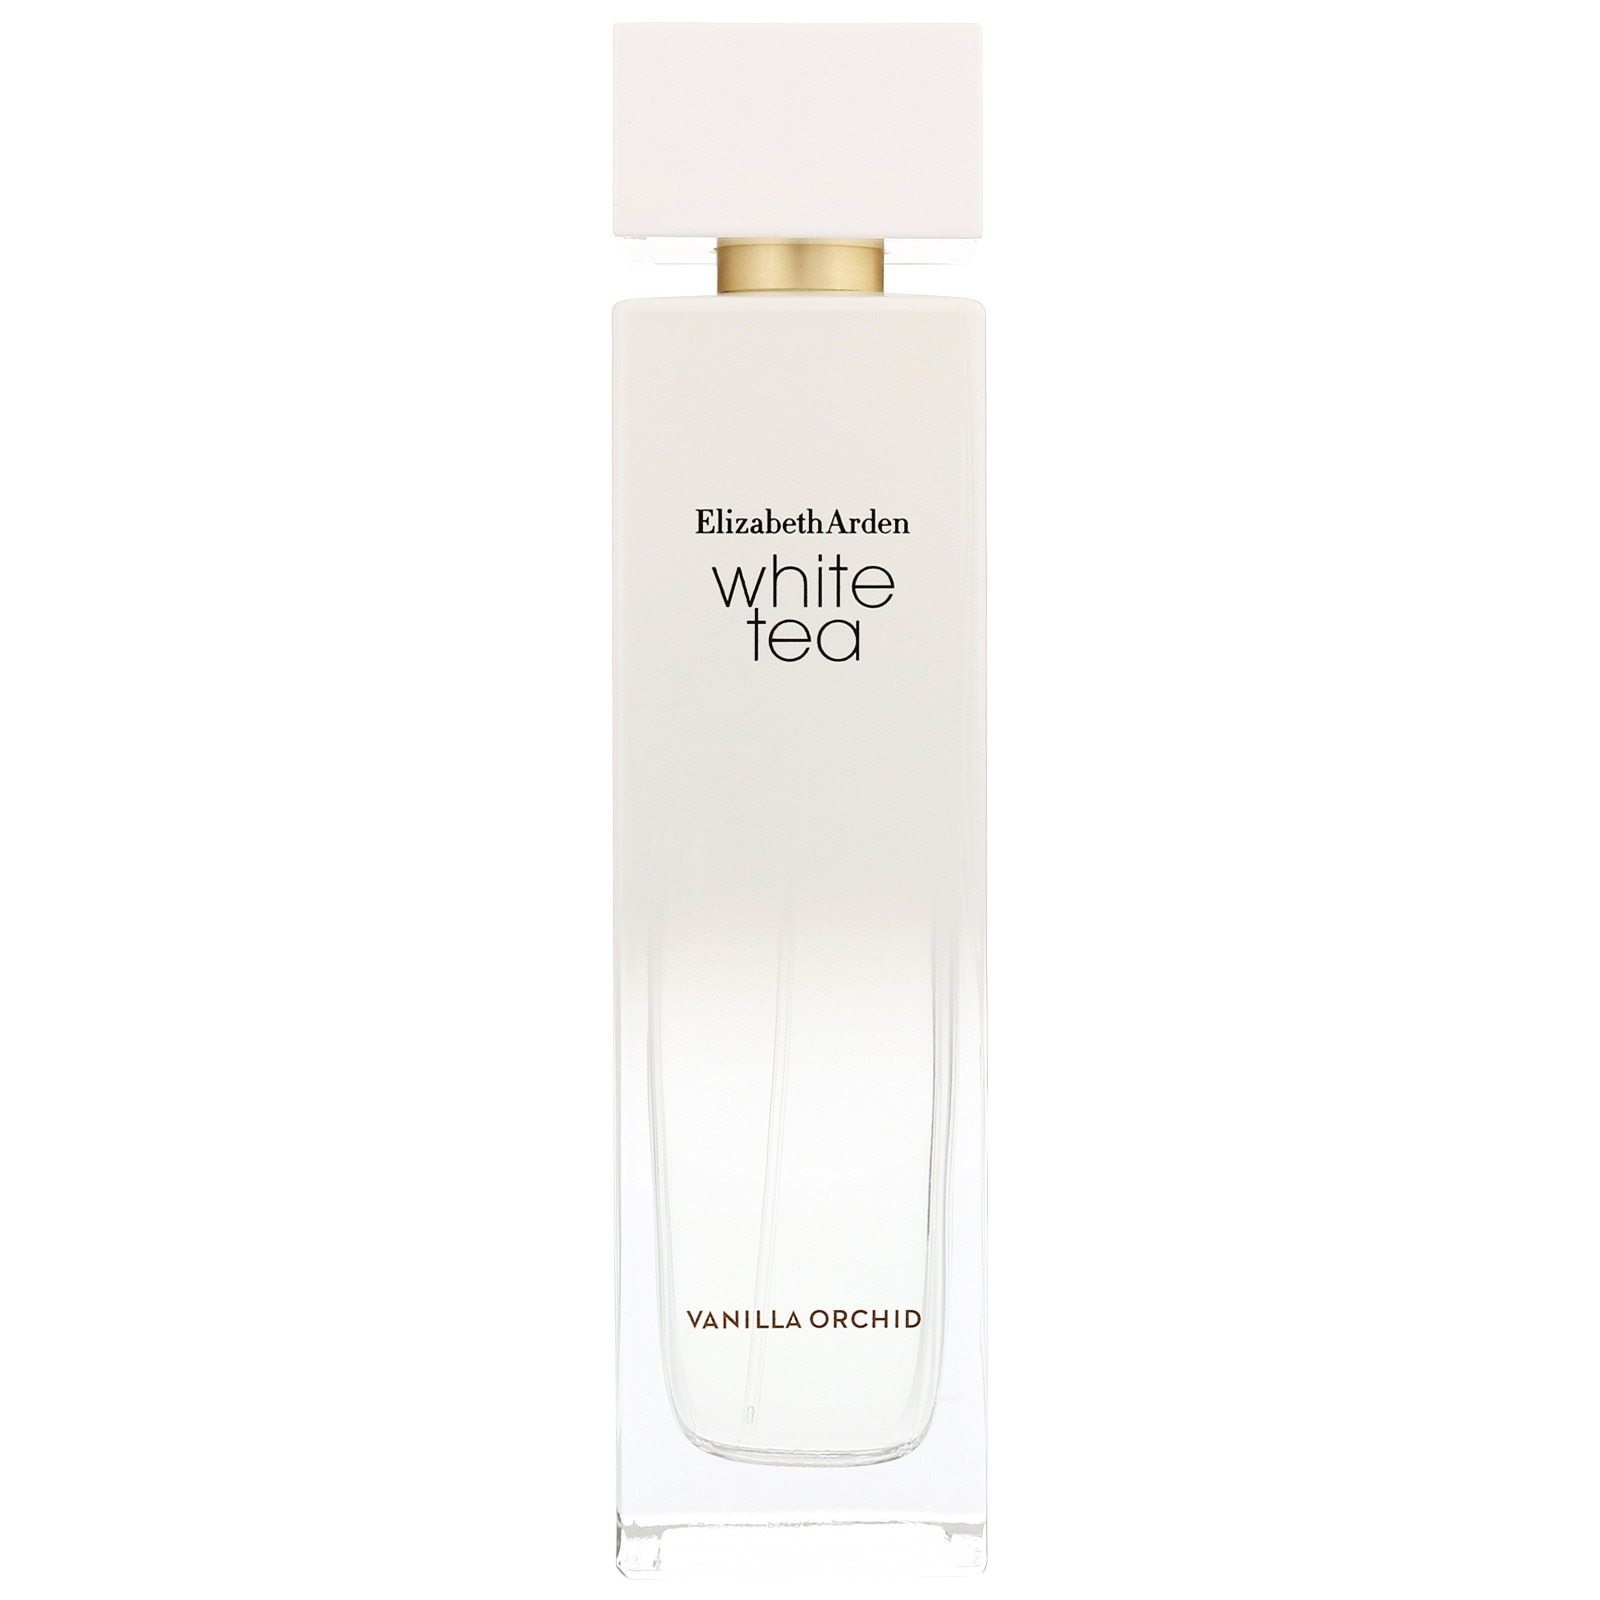 White Tea Elizabeth Arden Beauty